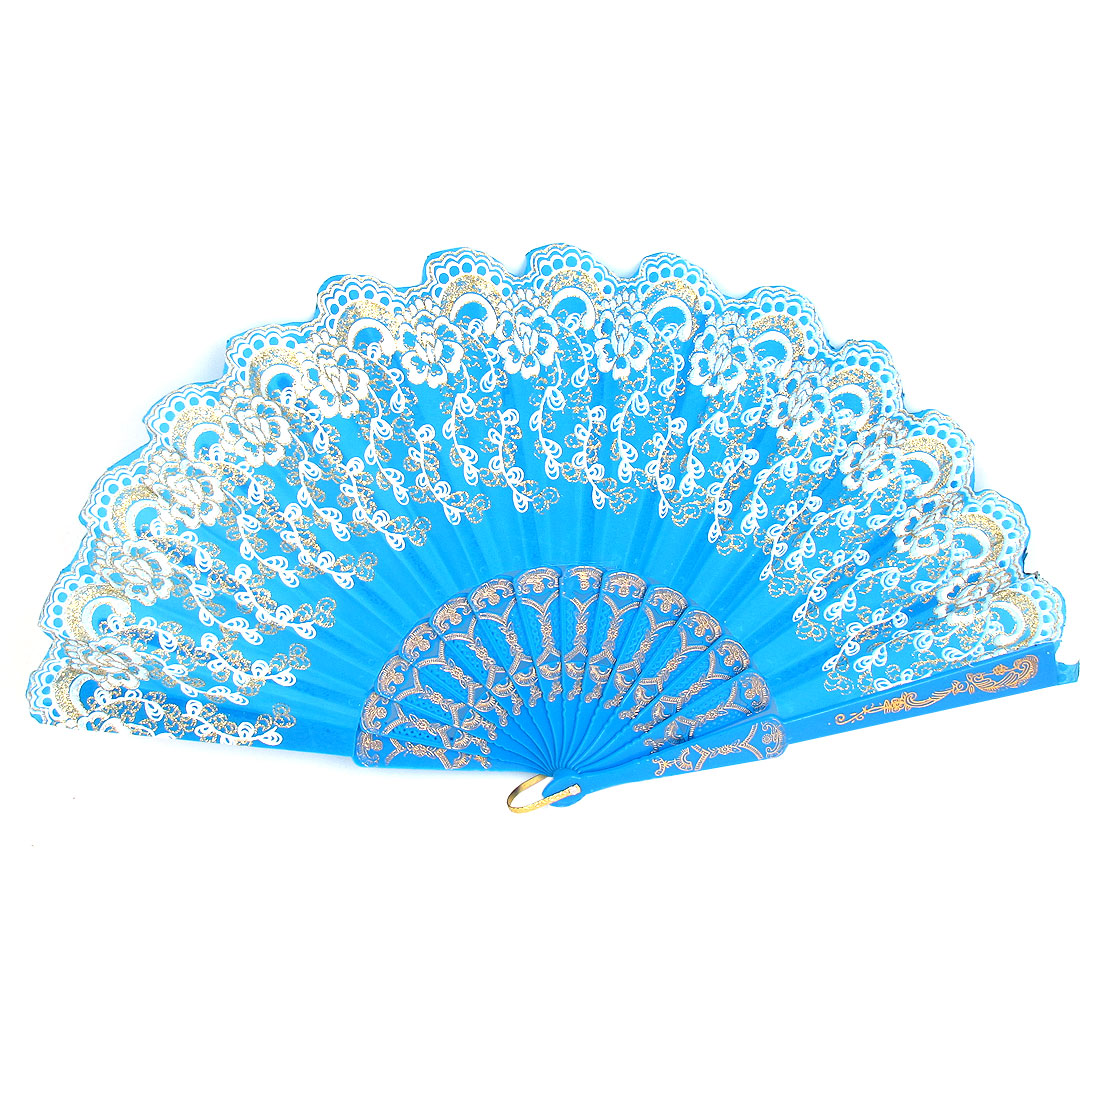 Blue Glittery Powder Accent Flower Print Wavy Edge Handheld Folding Hand Fan